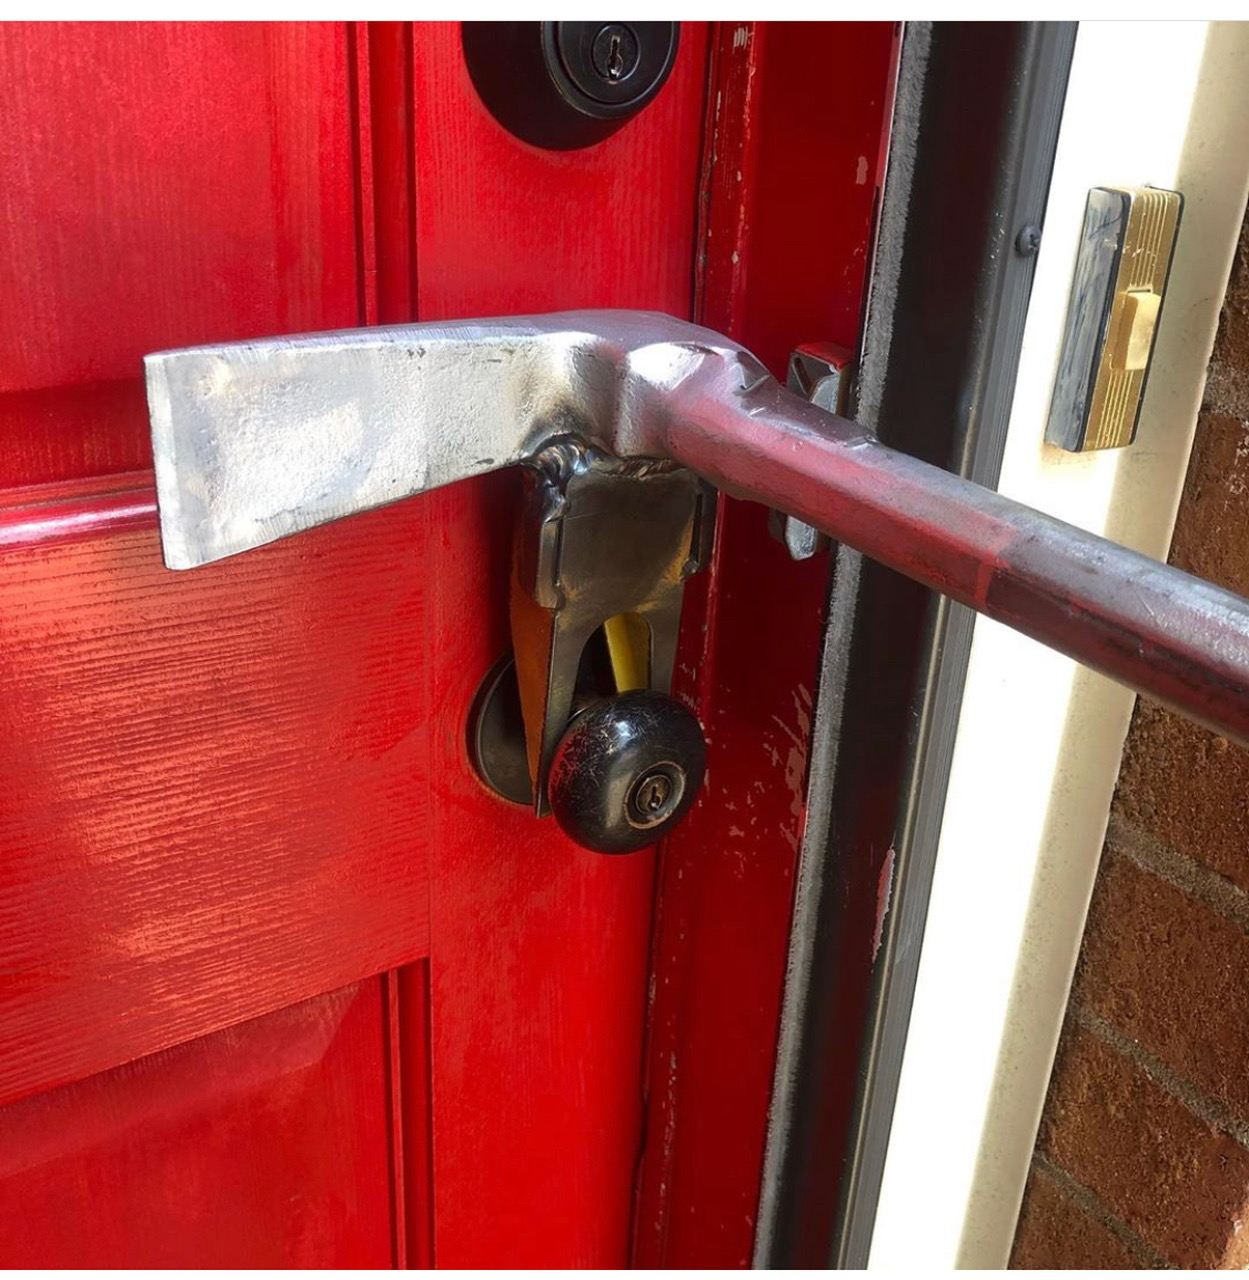 This modified halligan makes quick work of a locked door.